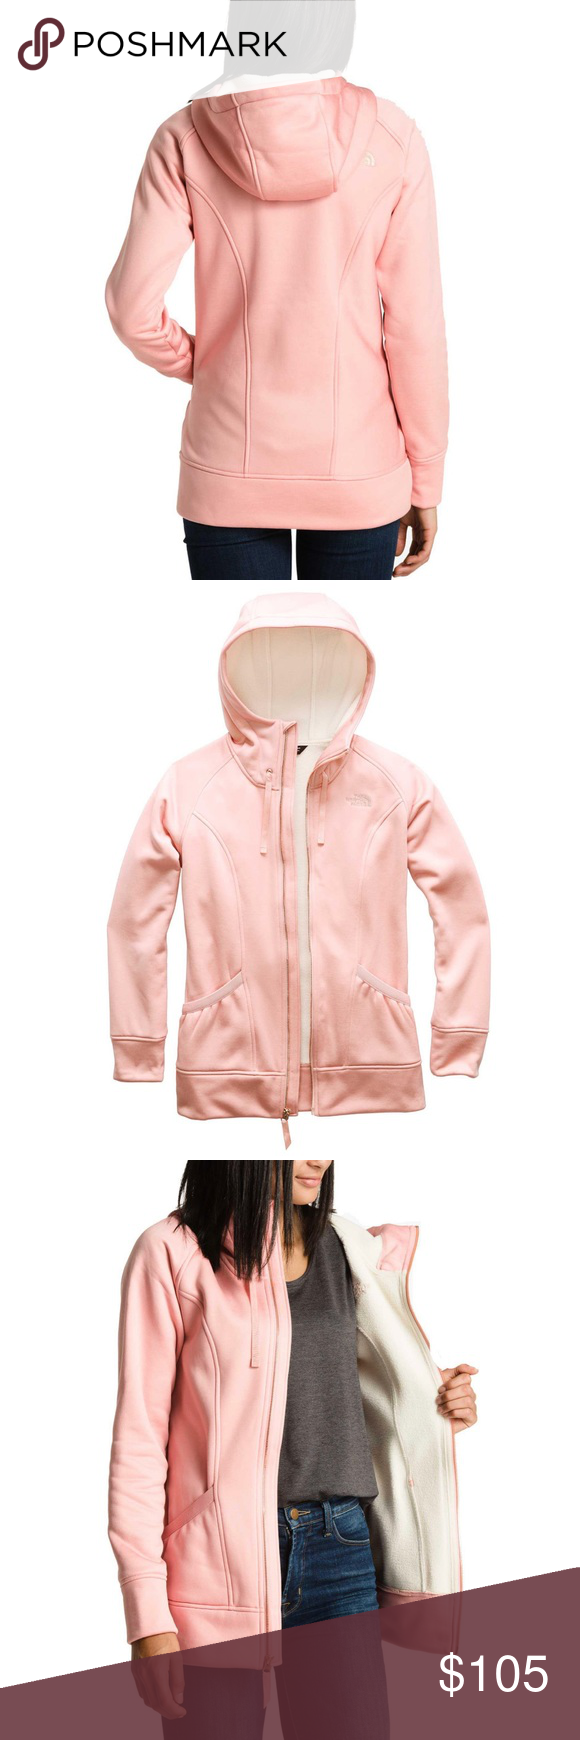 The North Face Cozy Cream Sherpa Jacket North Face Jacket Clothes Design Fashion [ 1740 x 580 Pixel ]